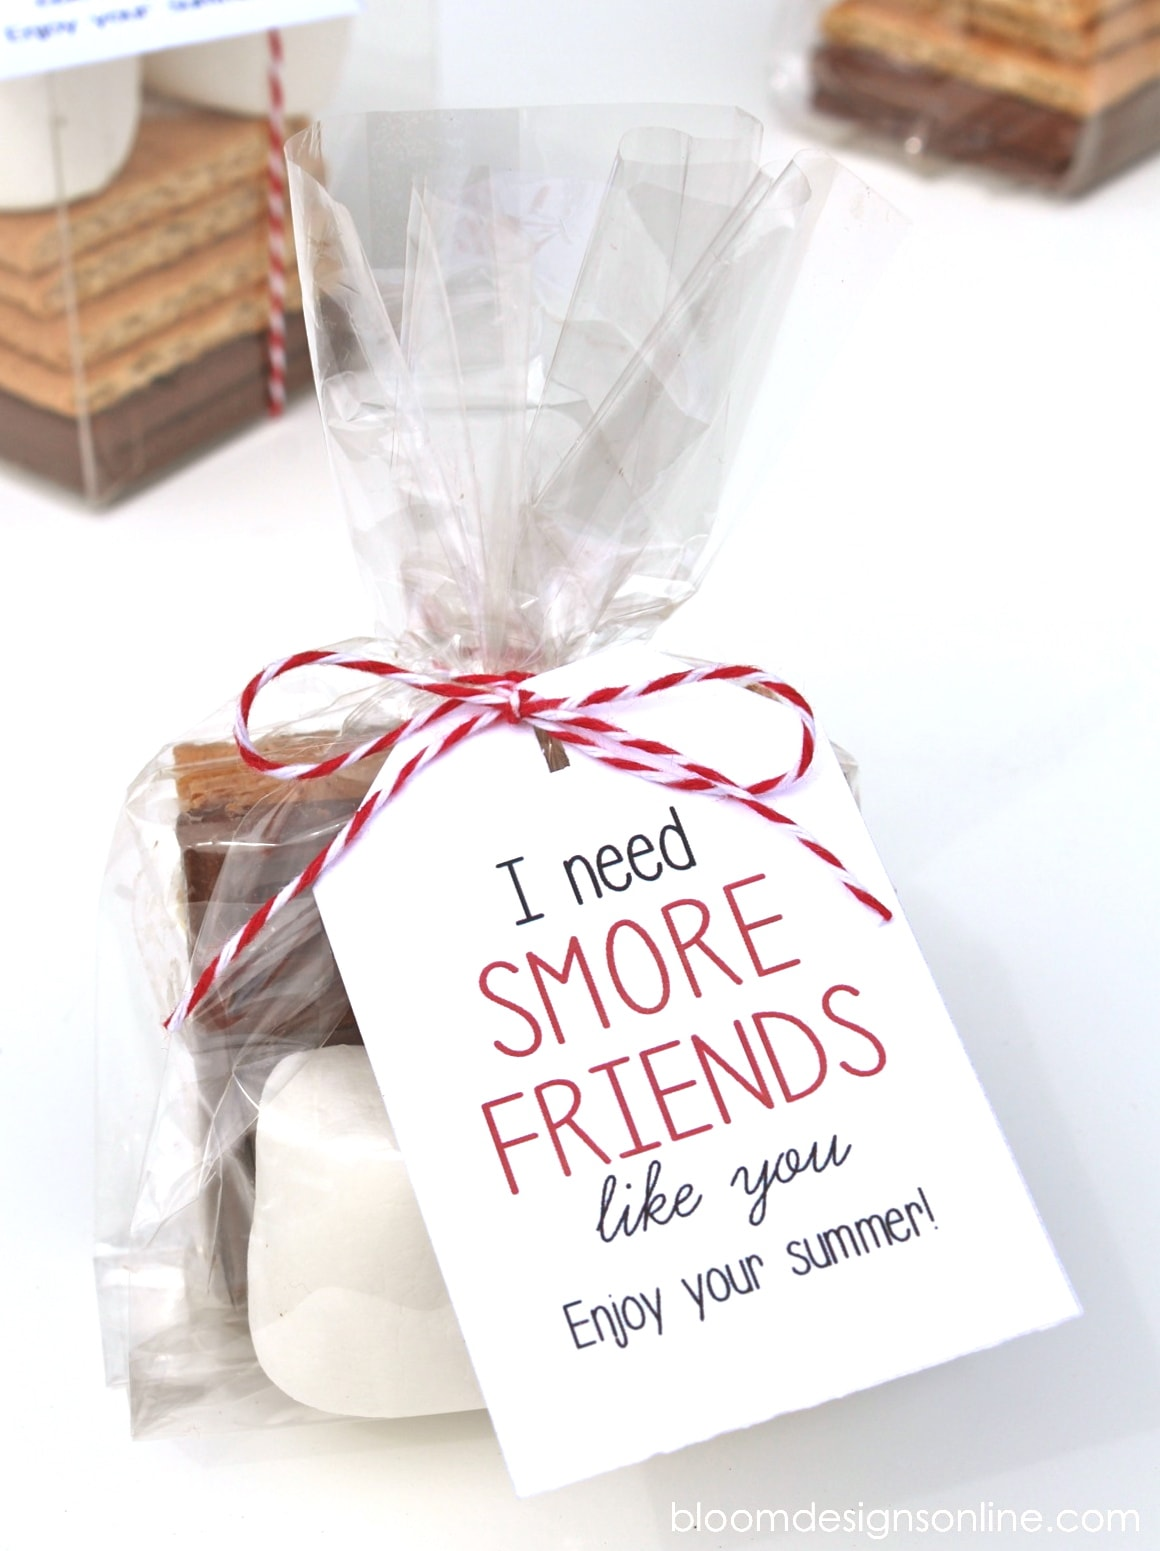 Smore Friends Like You Gift